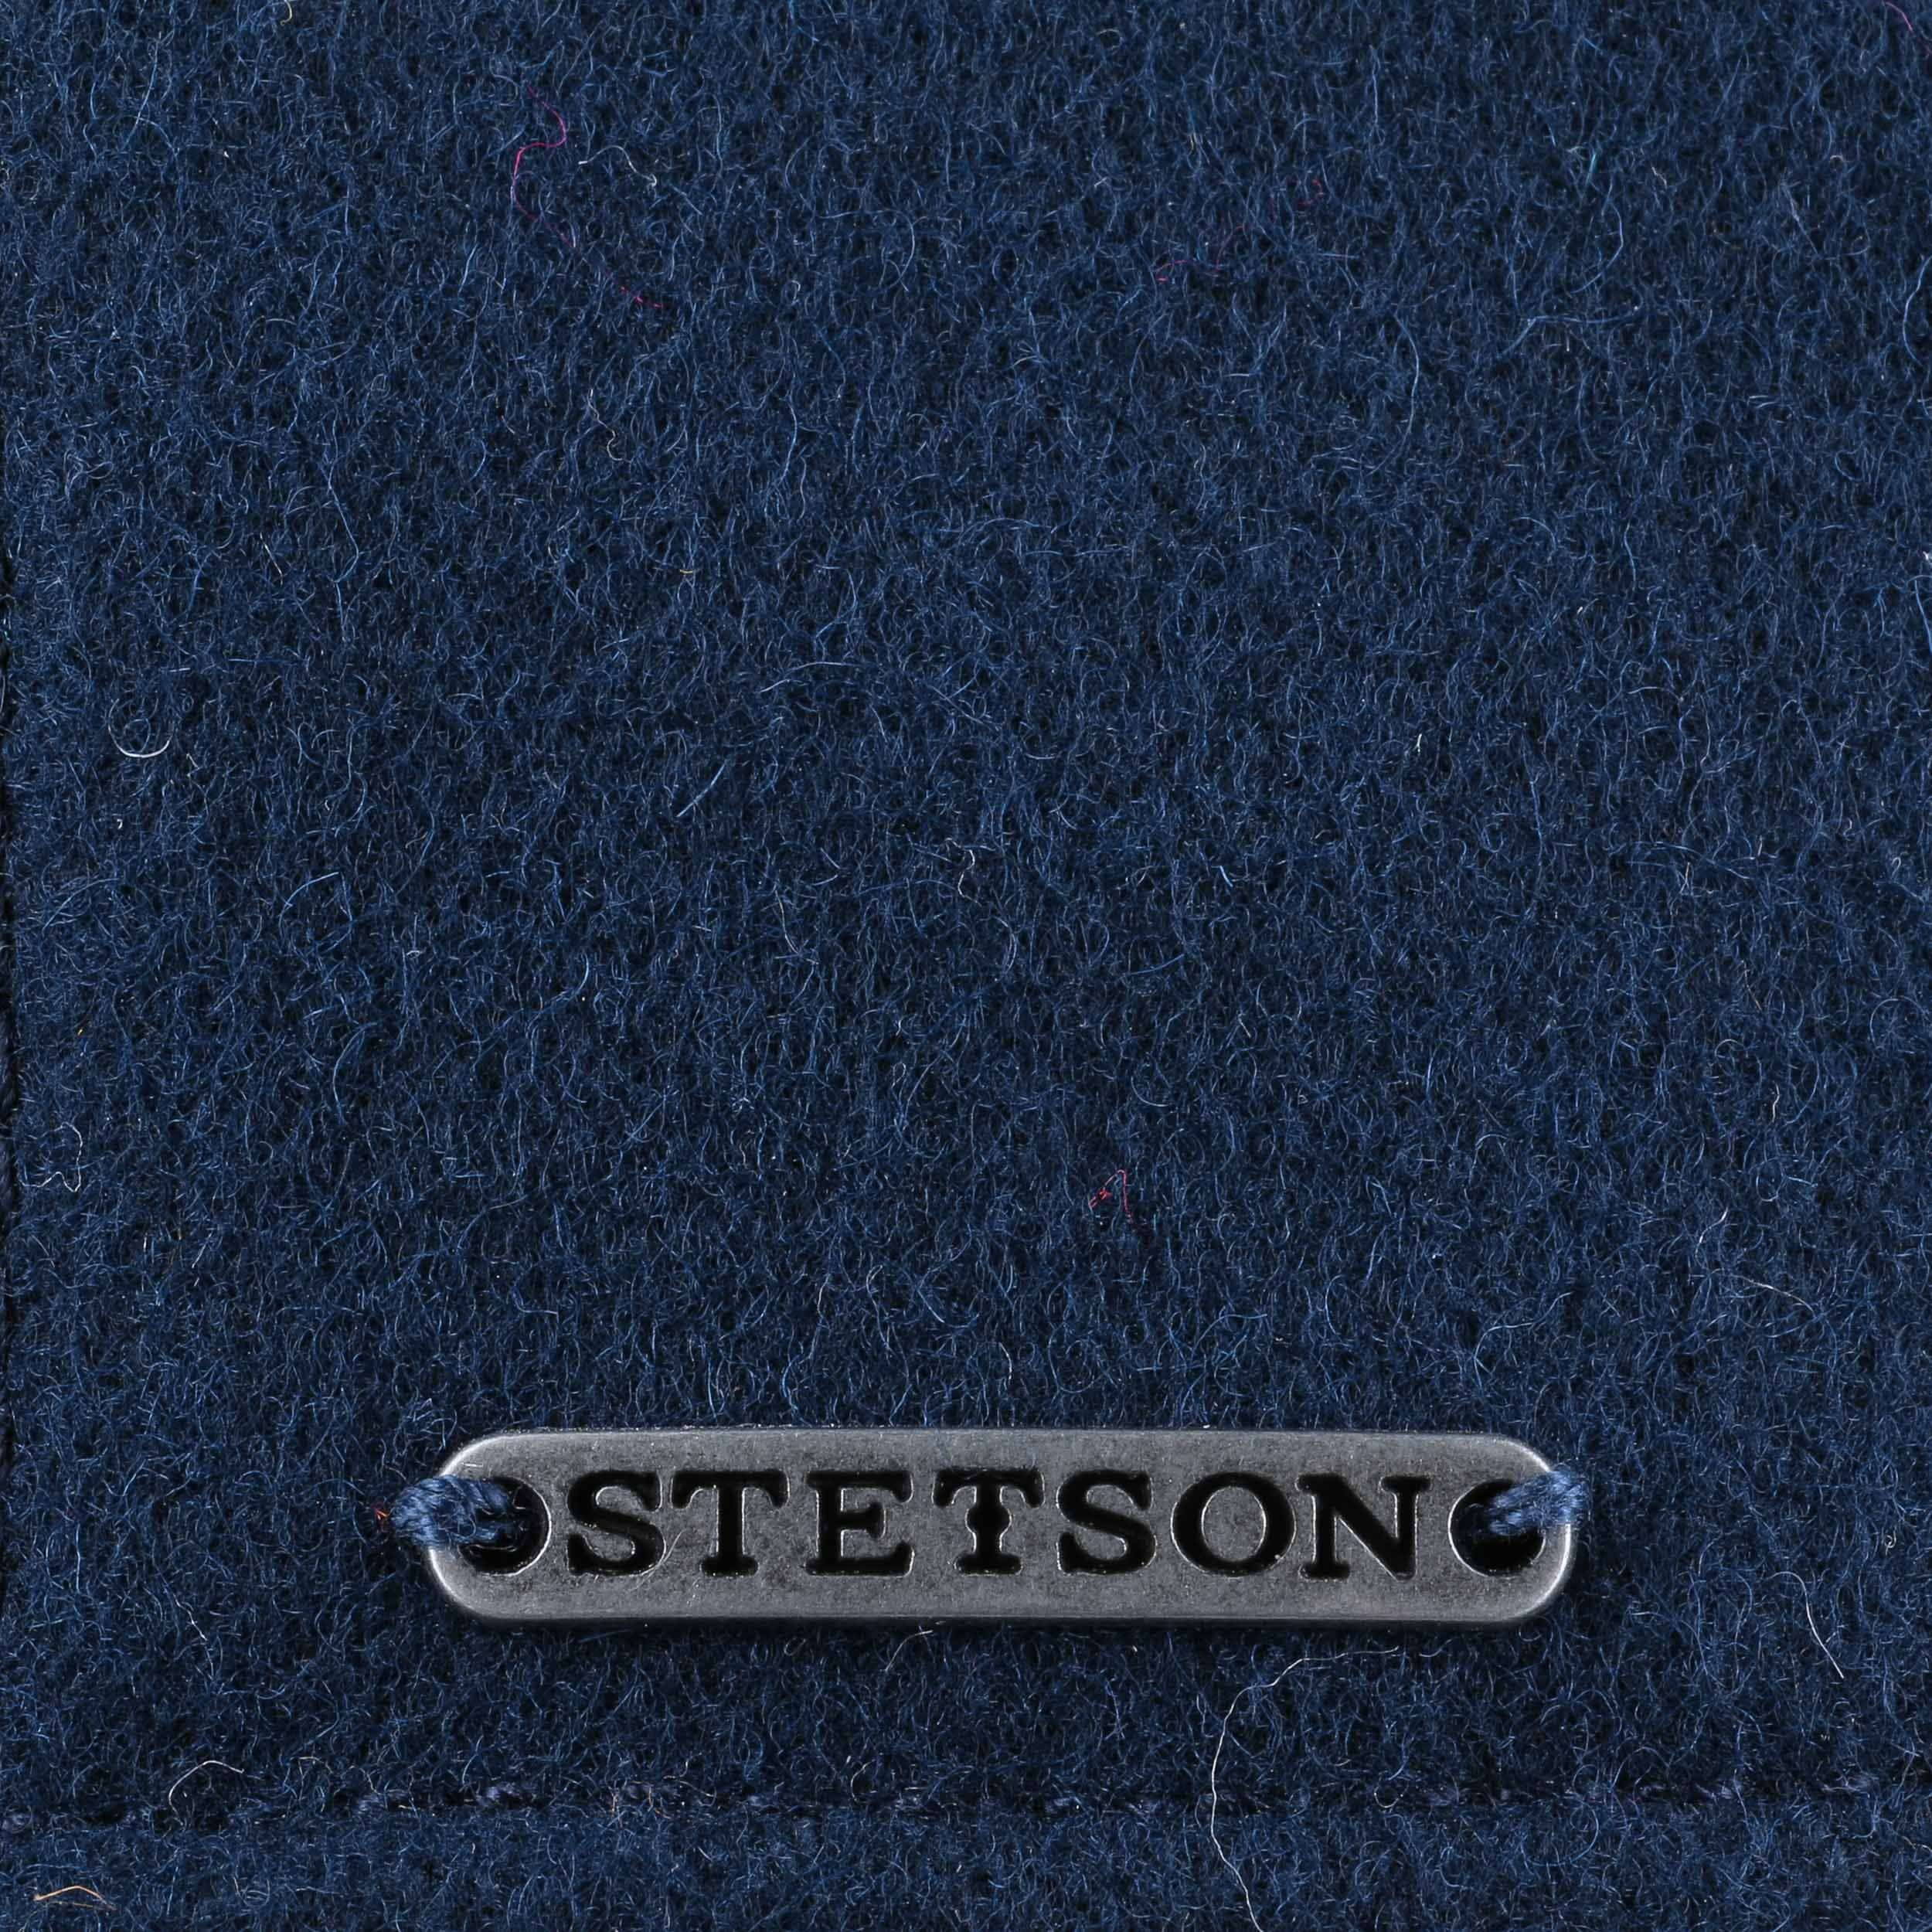 bfd0cdedaaa ... Virgin Wool Check Cap by Stetson - blue 3 ...